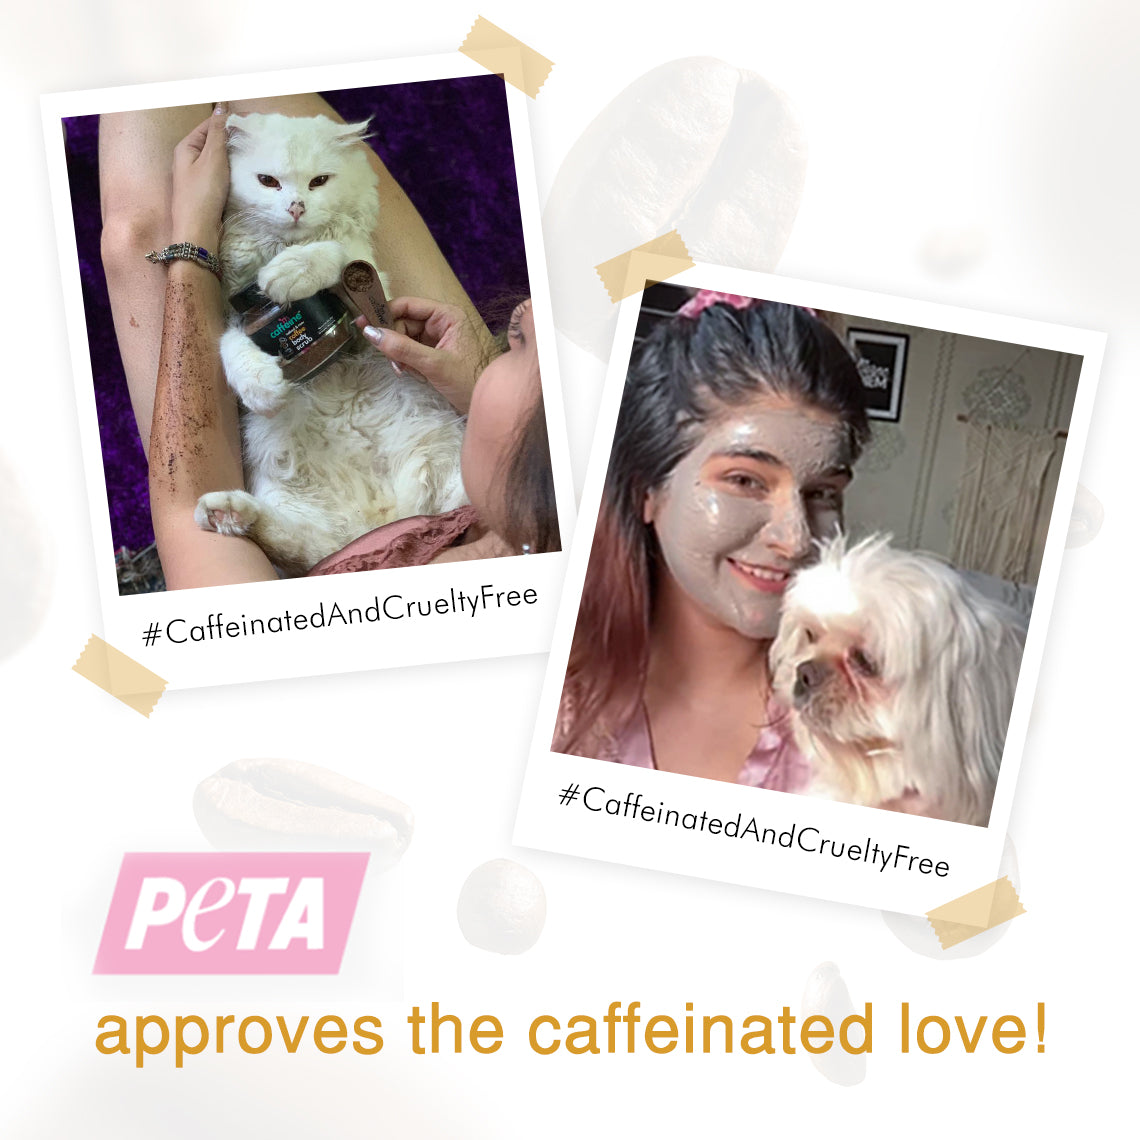 We just got PETA Certified!